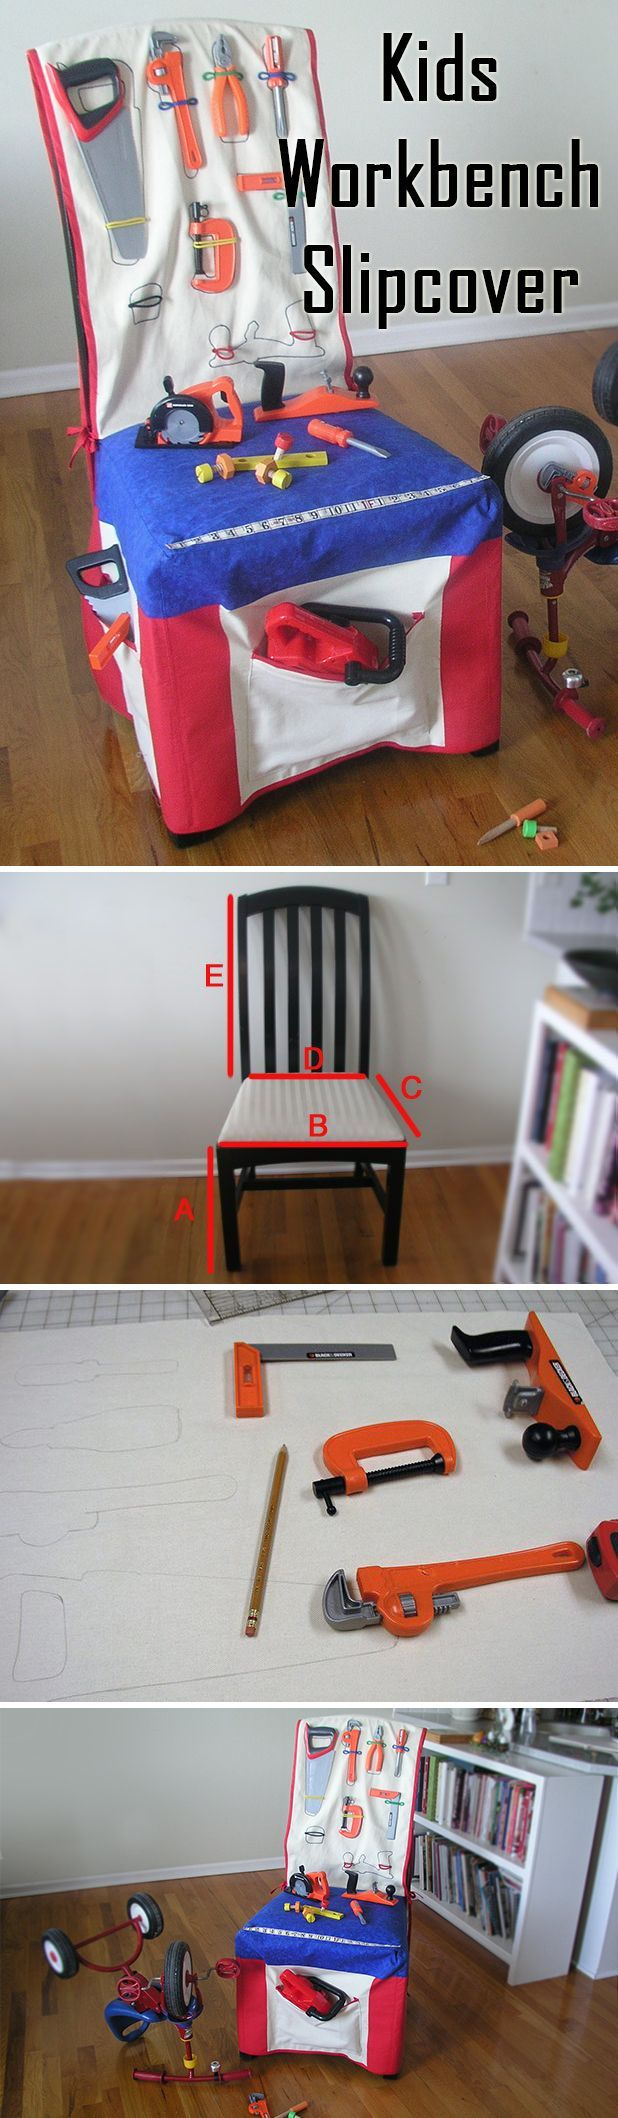 Super crafty idea! Make a completely stocked kids workbench slipcover for any chair. The kids will have such fun with this! www.ehow.com/...